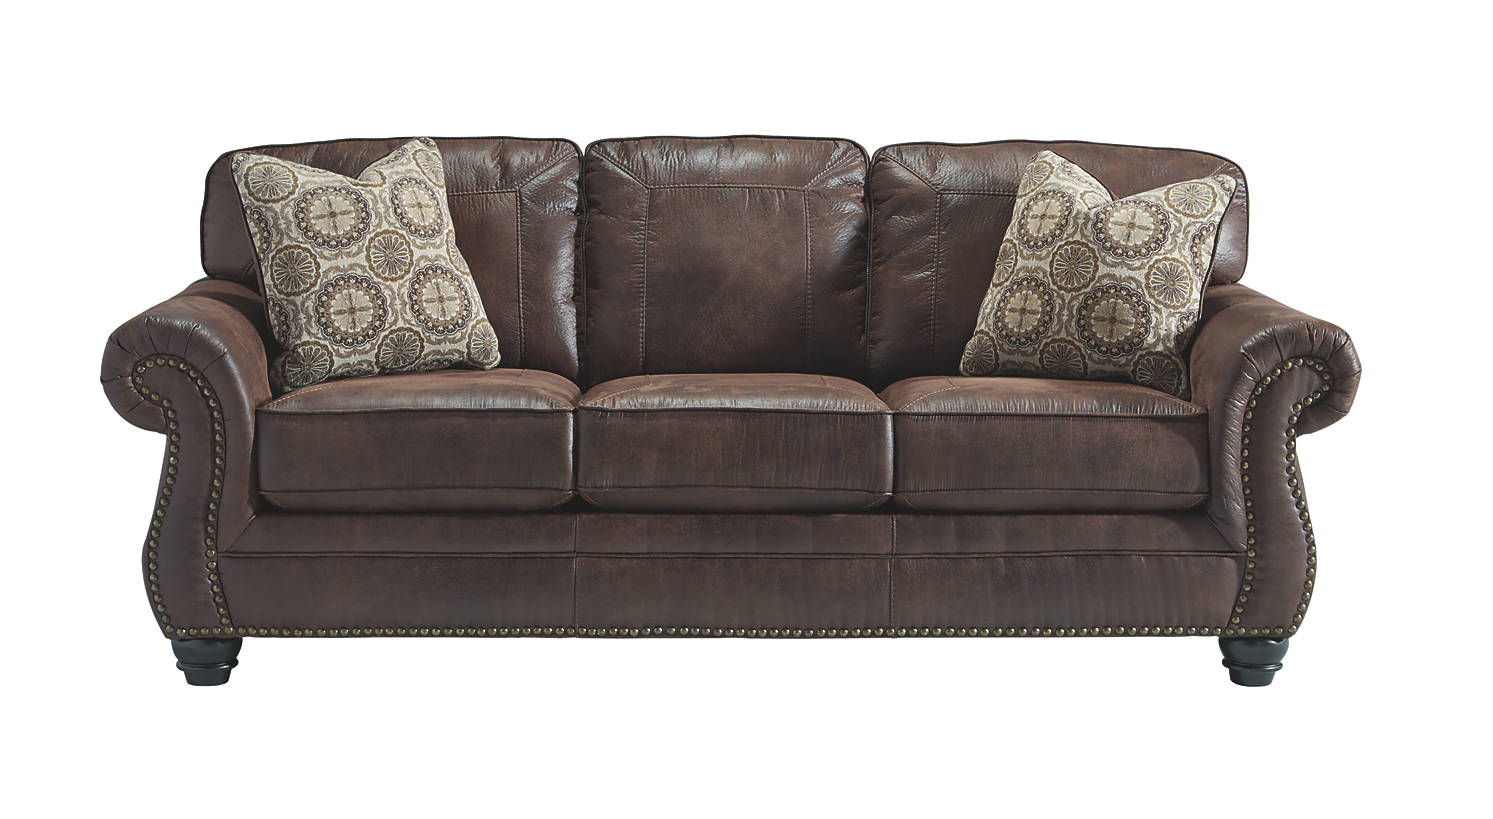 Benchcraft Breville weathered faux wood Casual Sofa